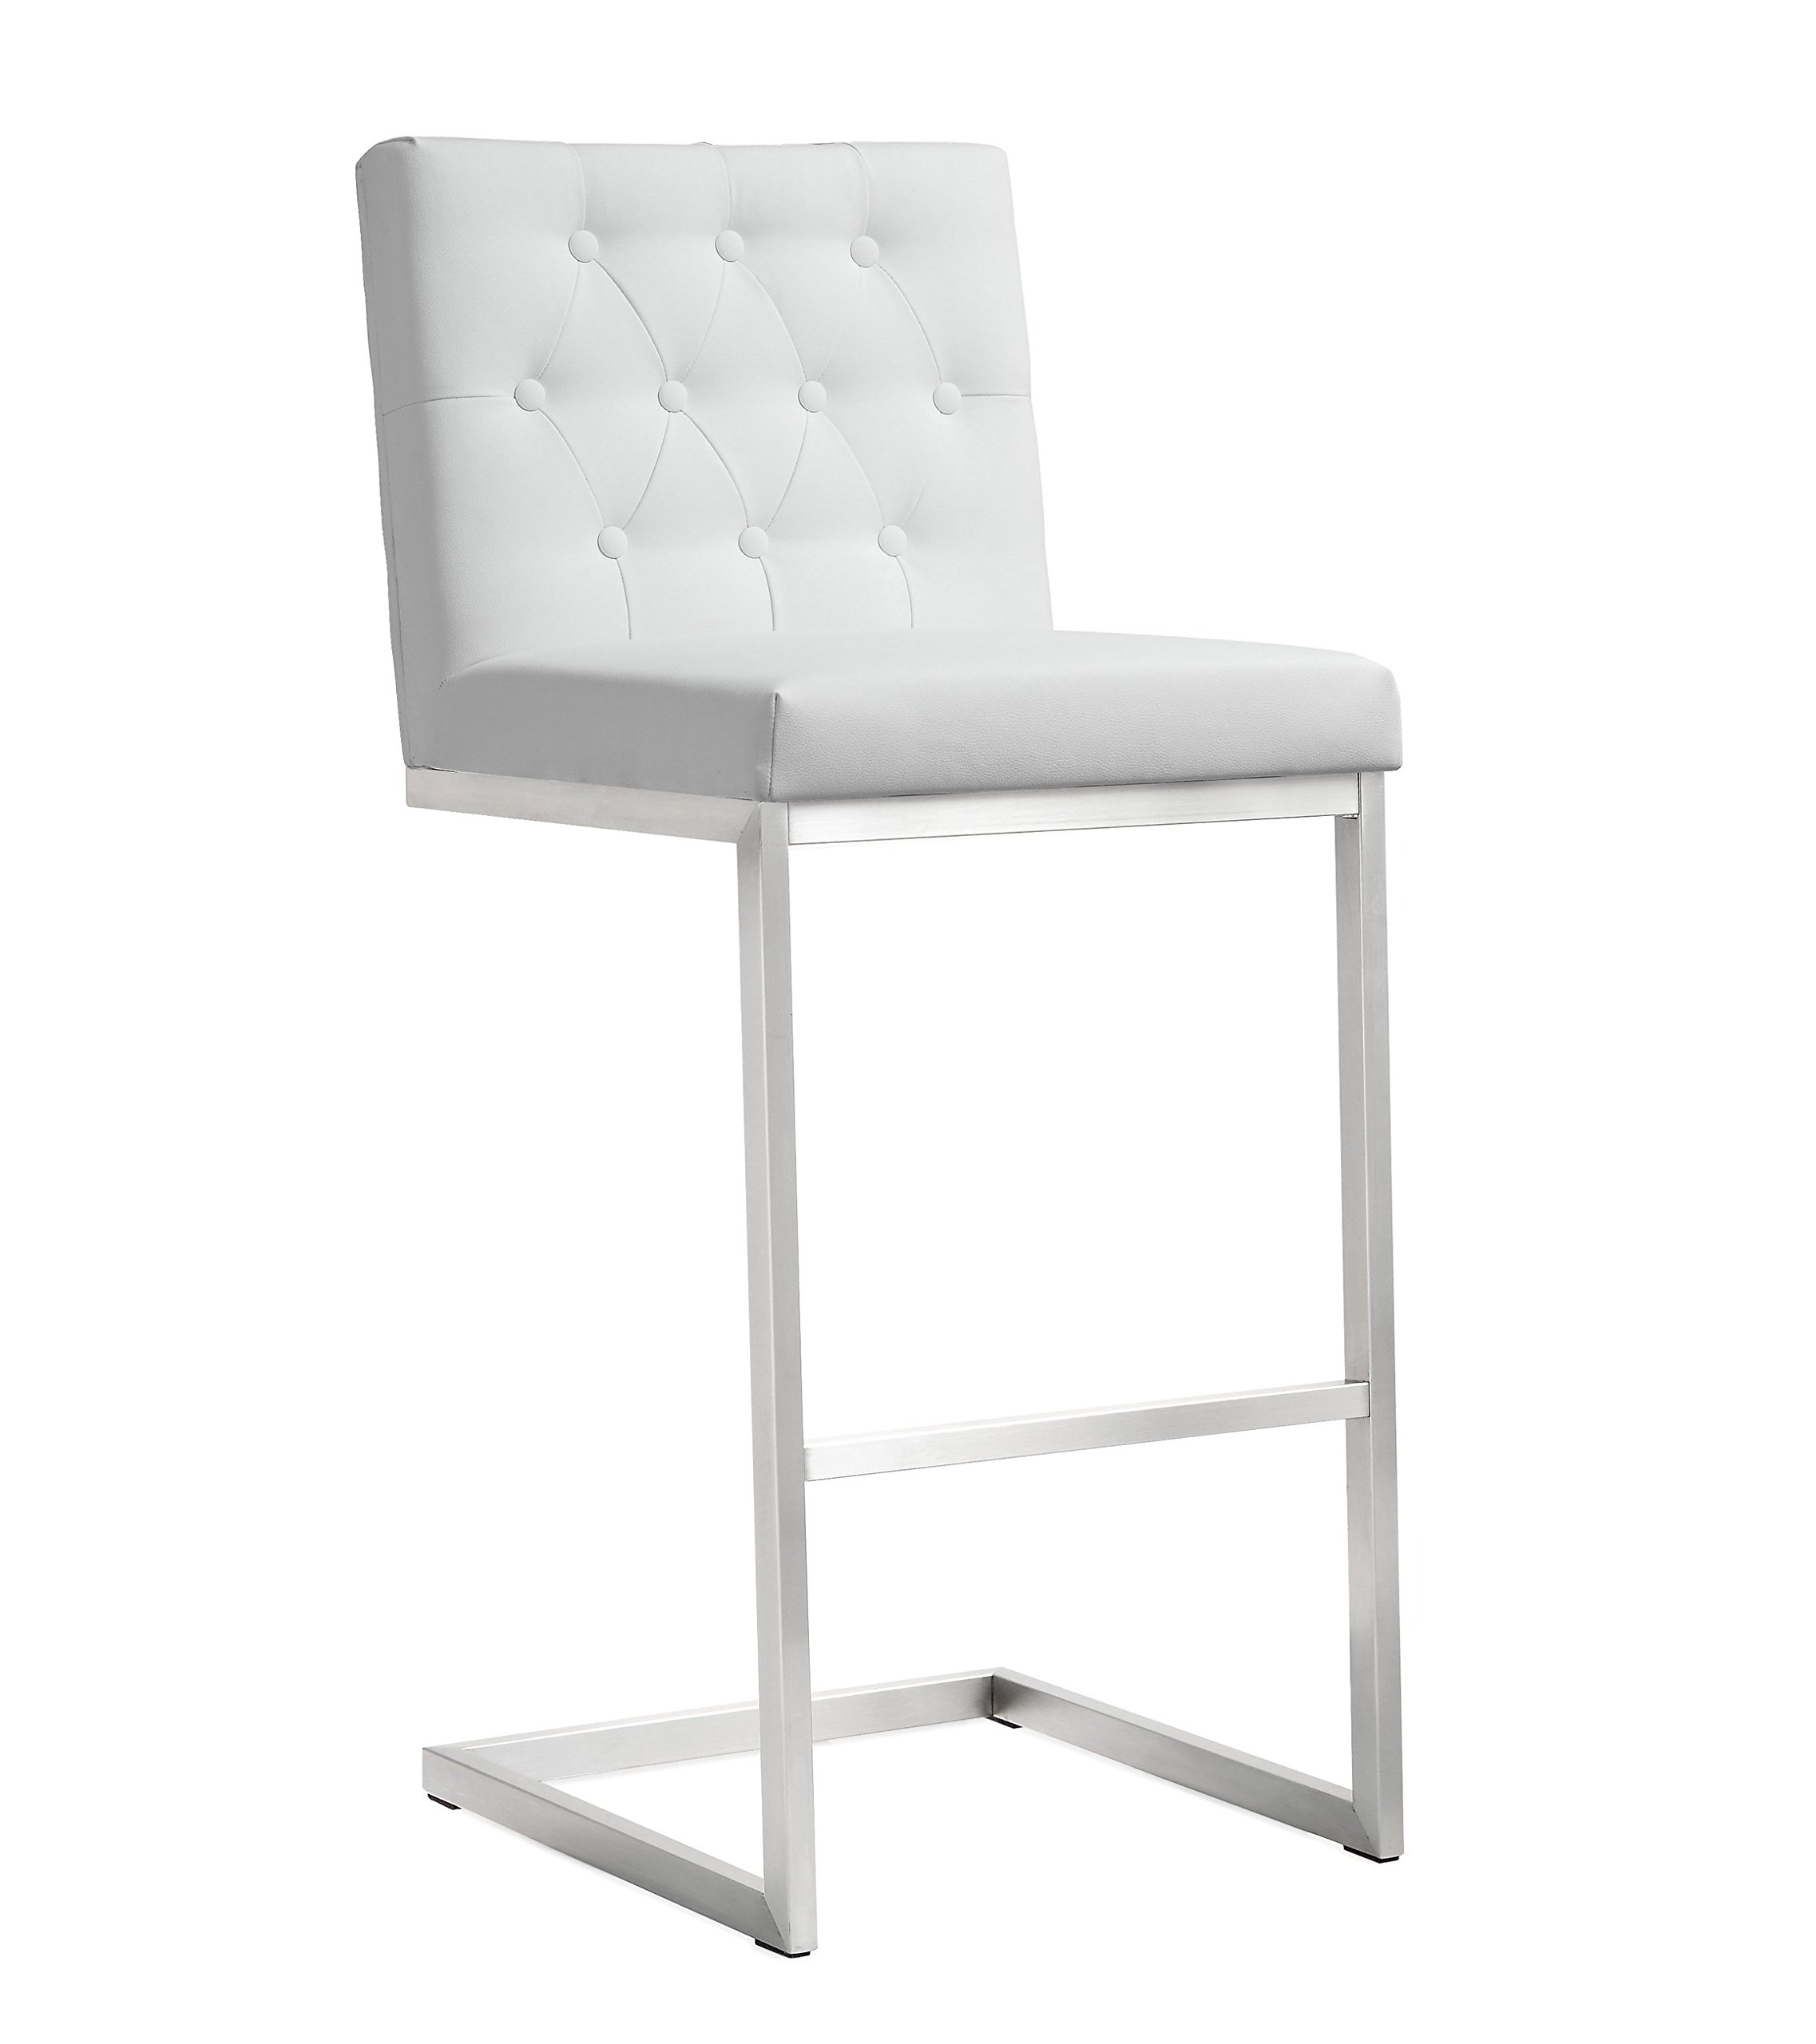 Tov Furniture The Helsinki Collection Modern Style Eco-Leather Upholstered Stainless Steel Barstool (Set of 2), White by Tov Furniture